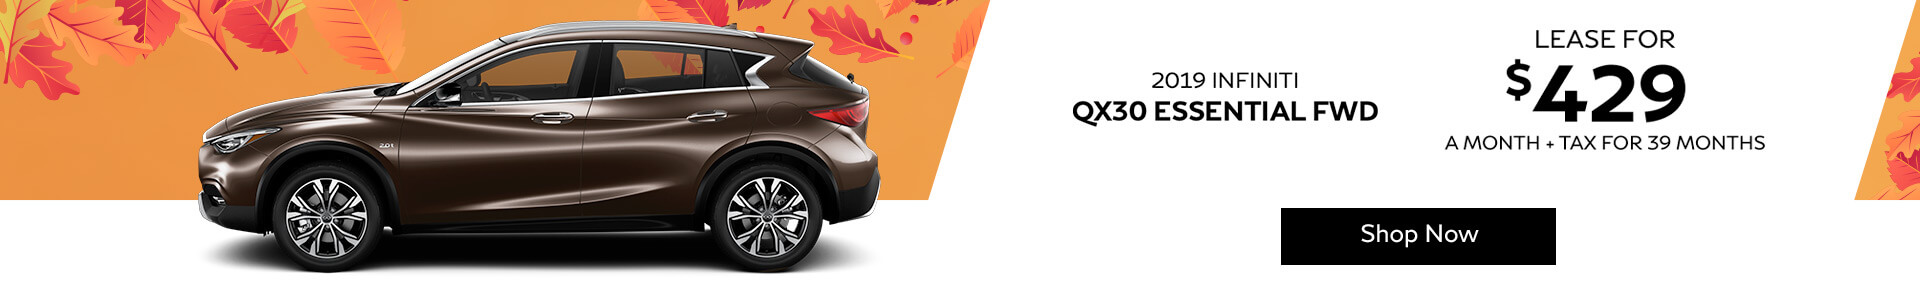 QX30 ESSENTIAL - Lease for $429